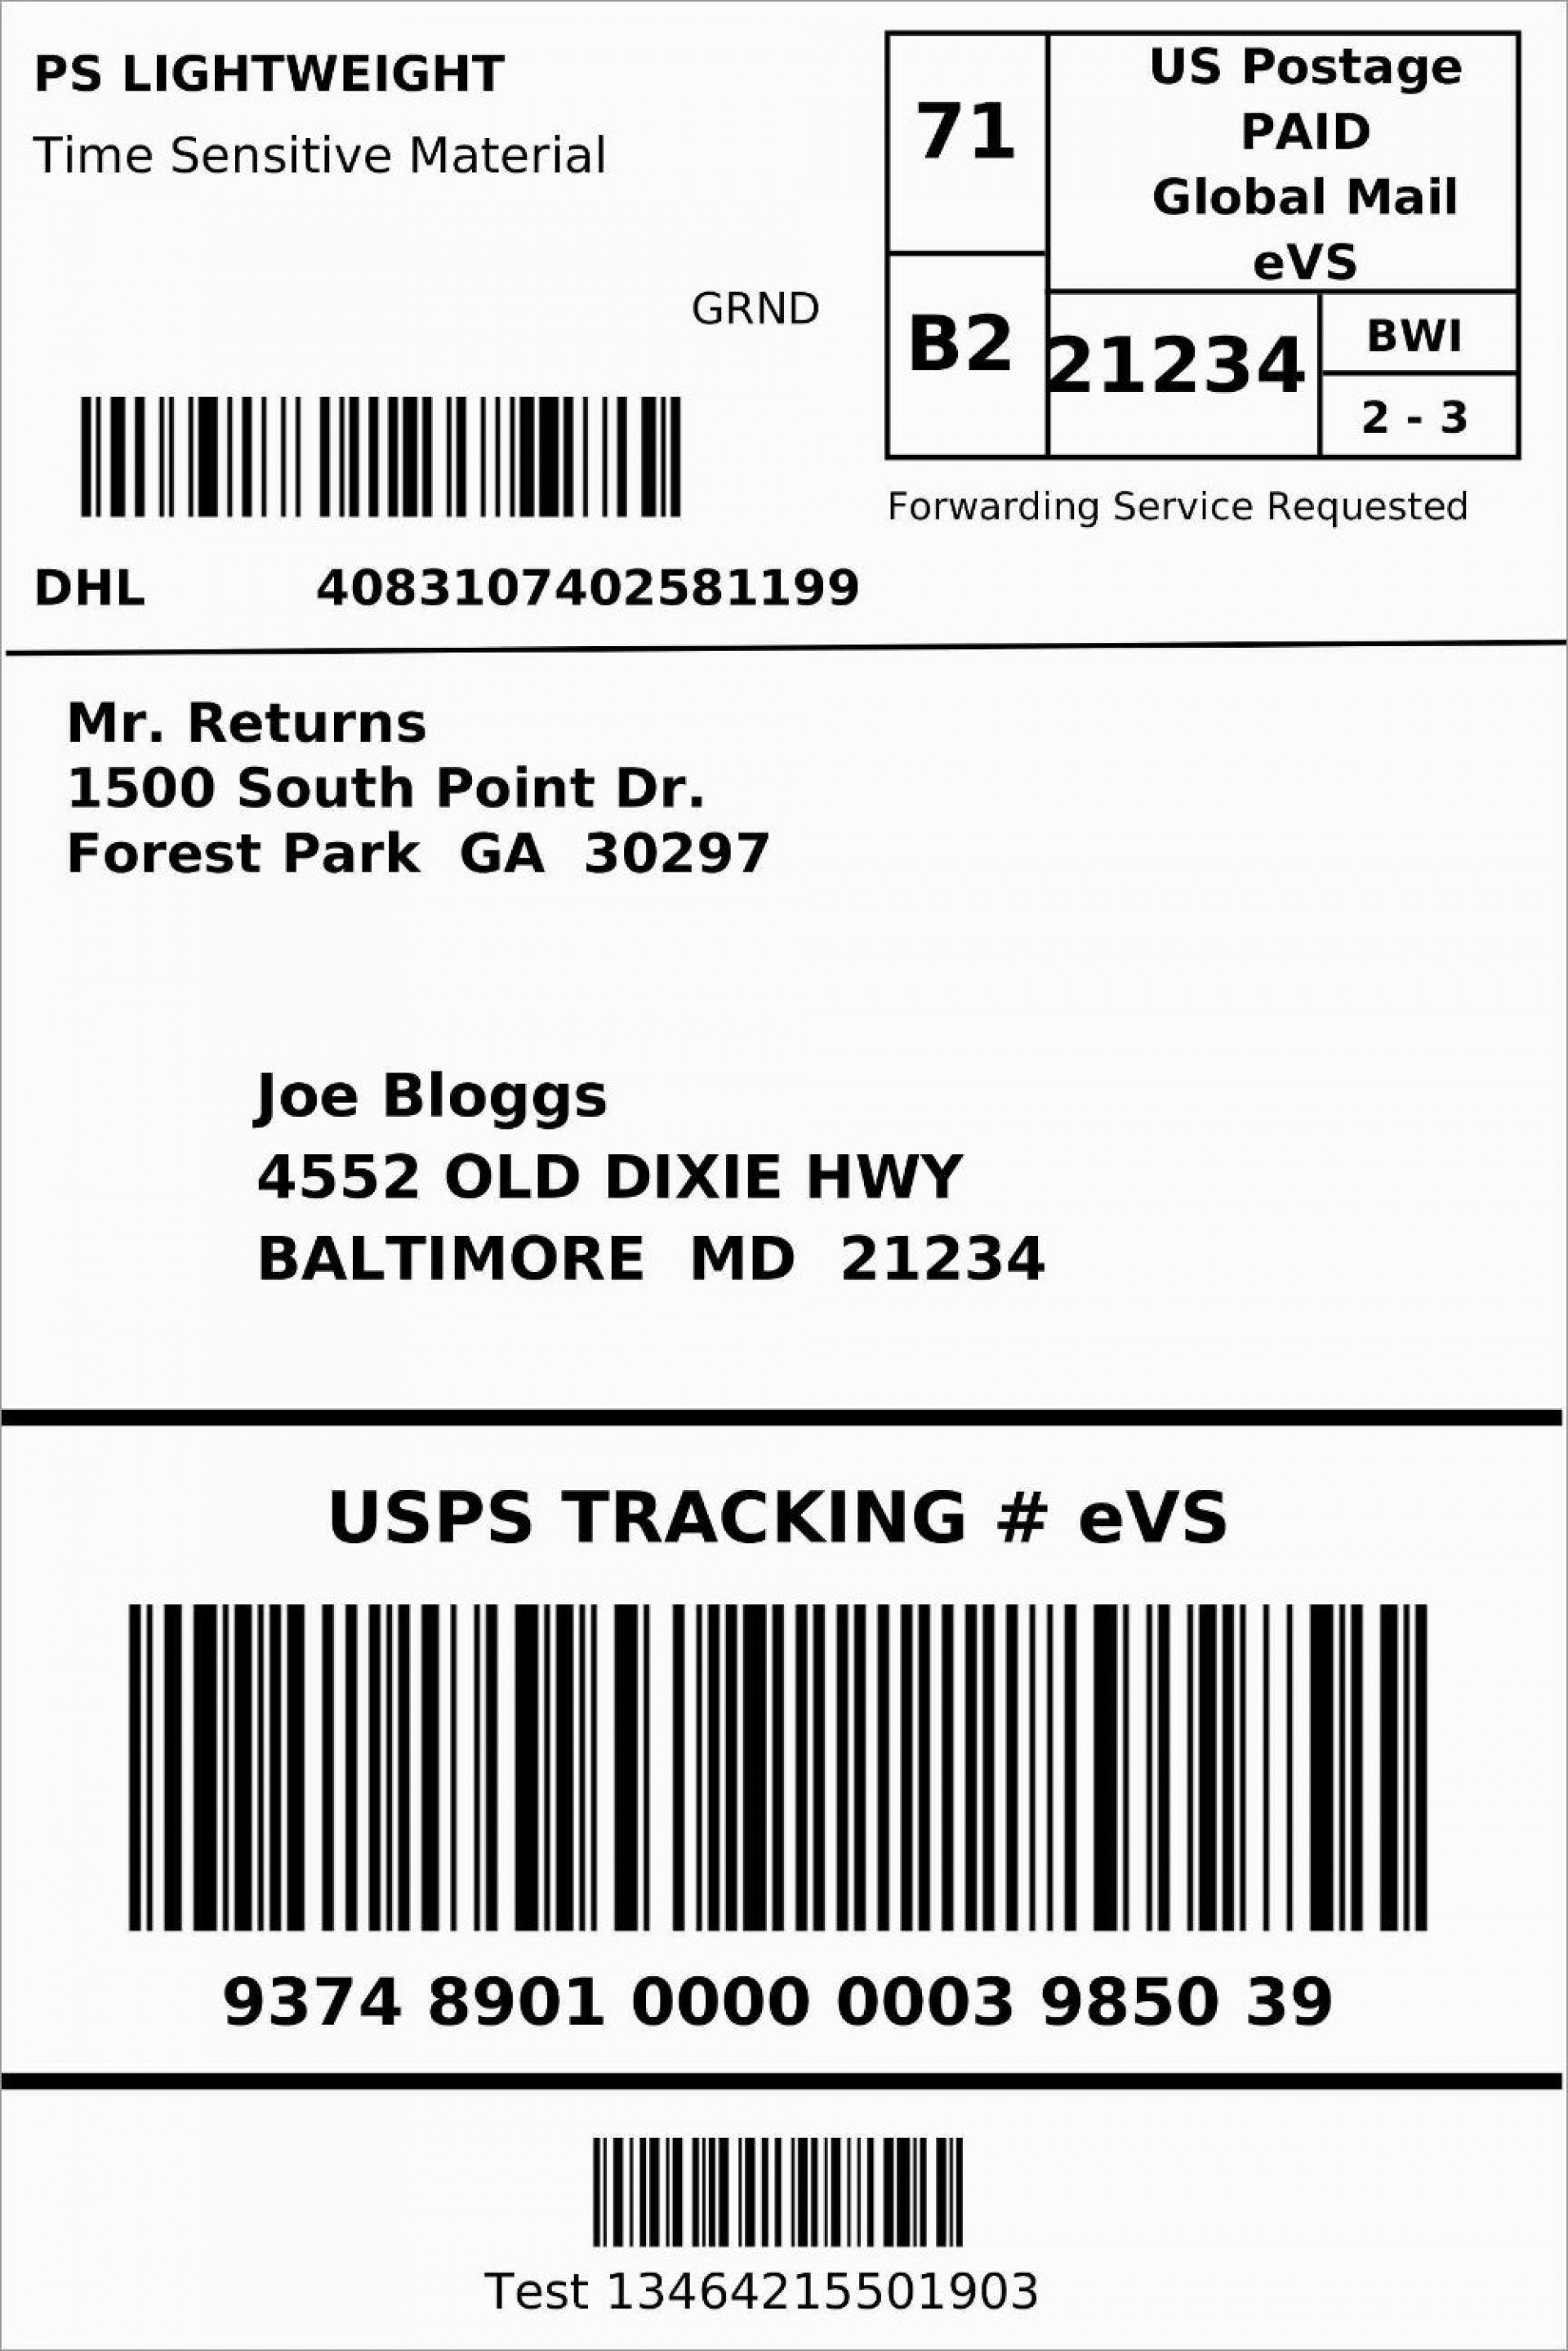 002 Amazing Free Shipping Label Template Image  Format Word For Mac1920